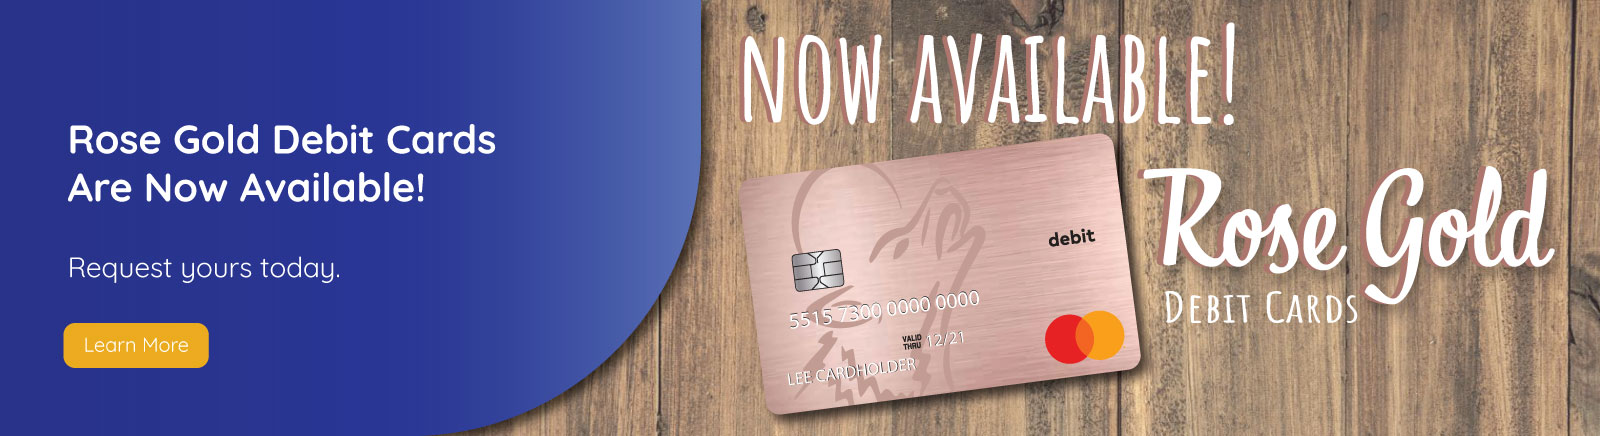 Wolf River Community Bank now has Rose Gold Debit Cards